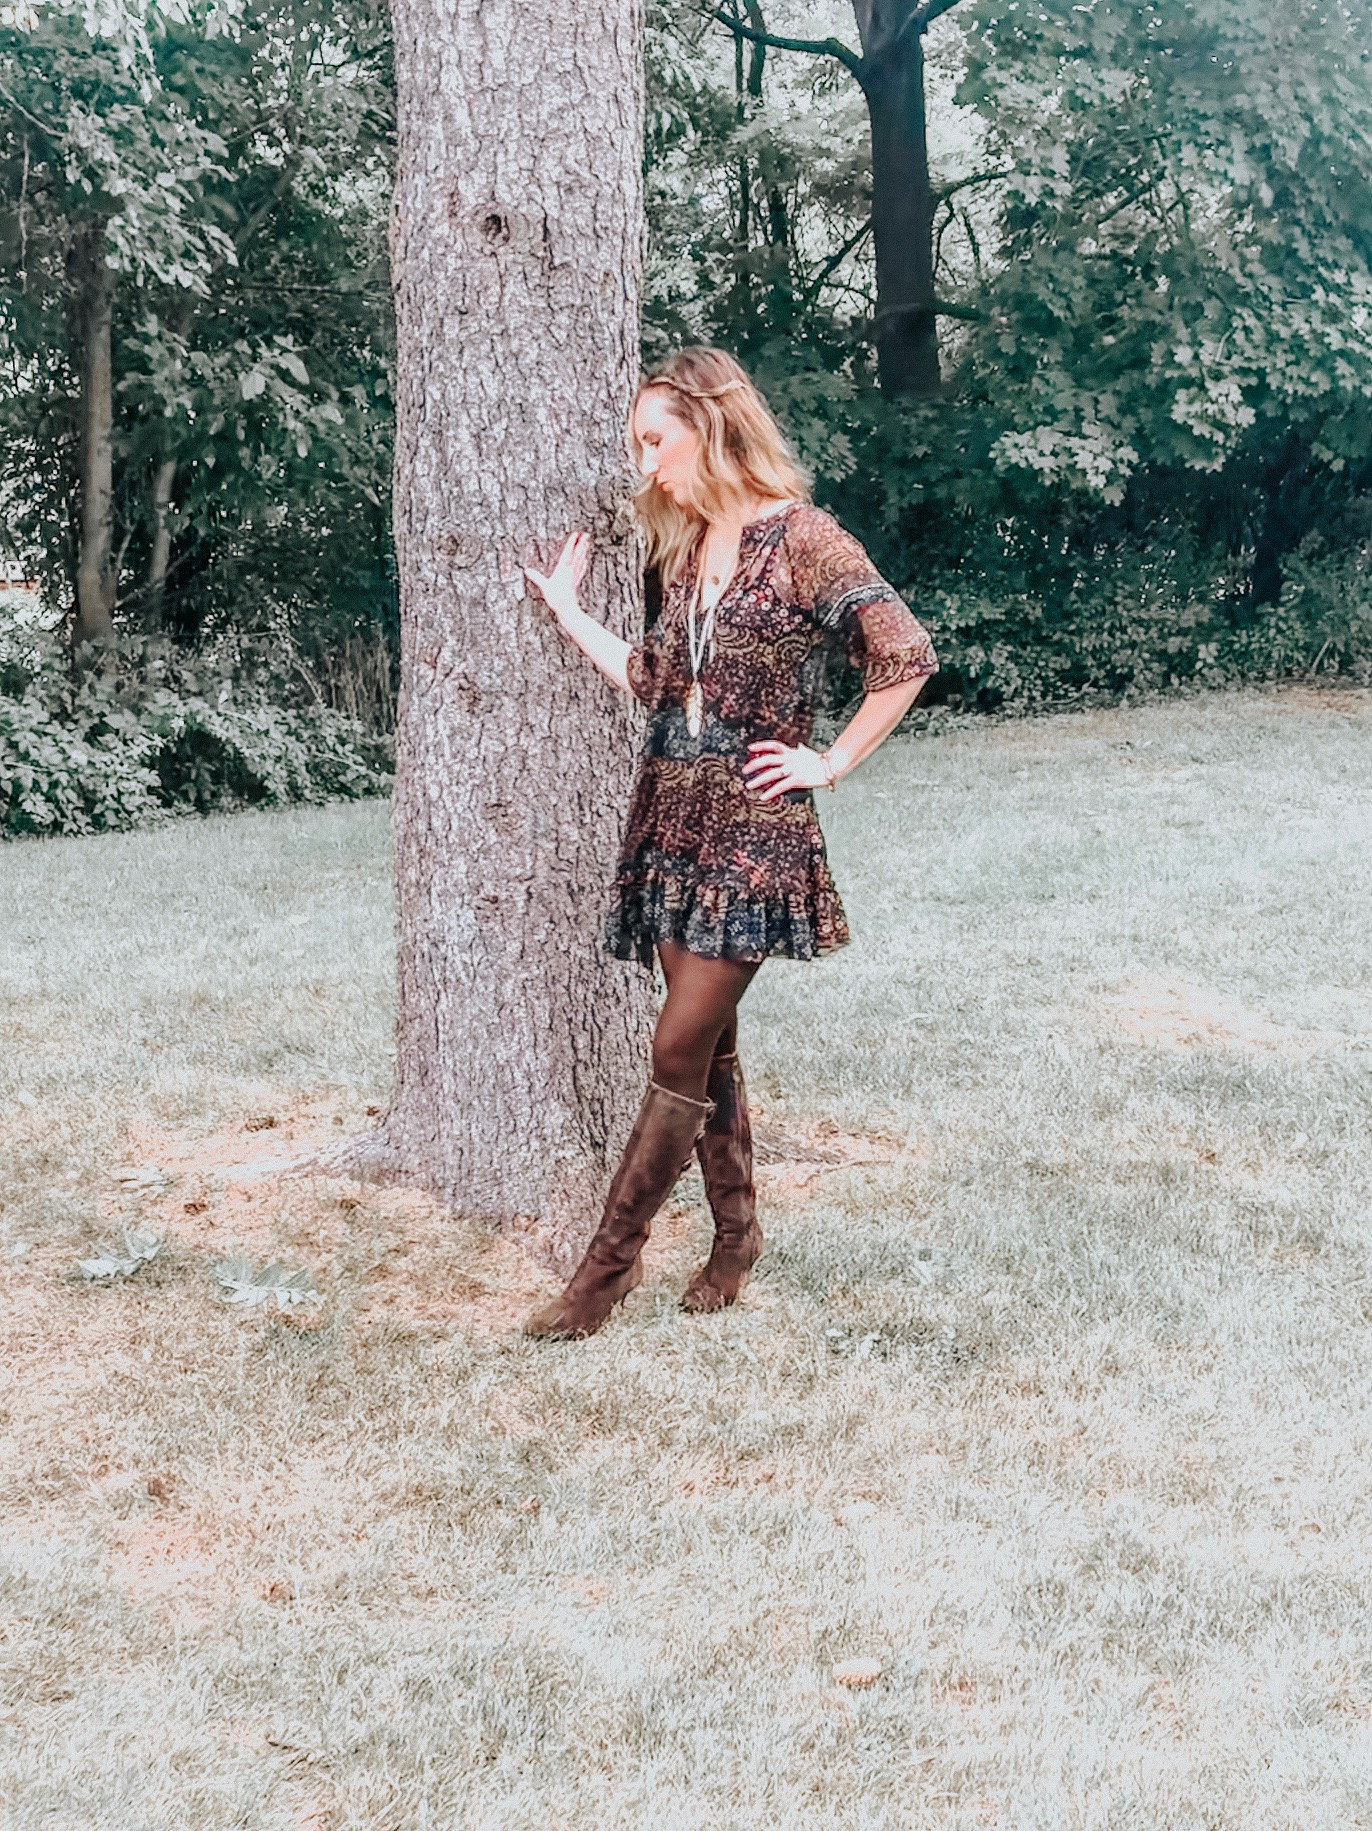 Easy ways to create a boho style outfit #bohostyle #bohemianstyle #falllooks #fallstyle #neutrals